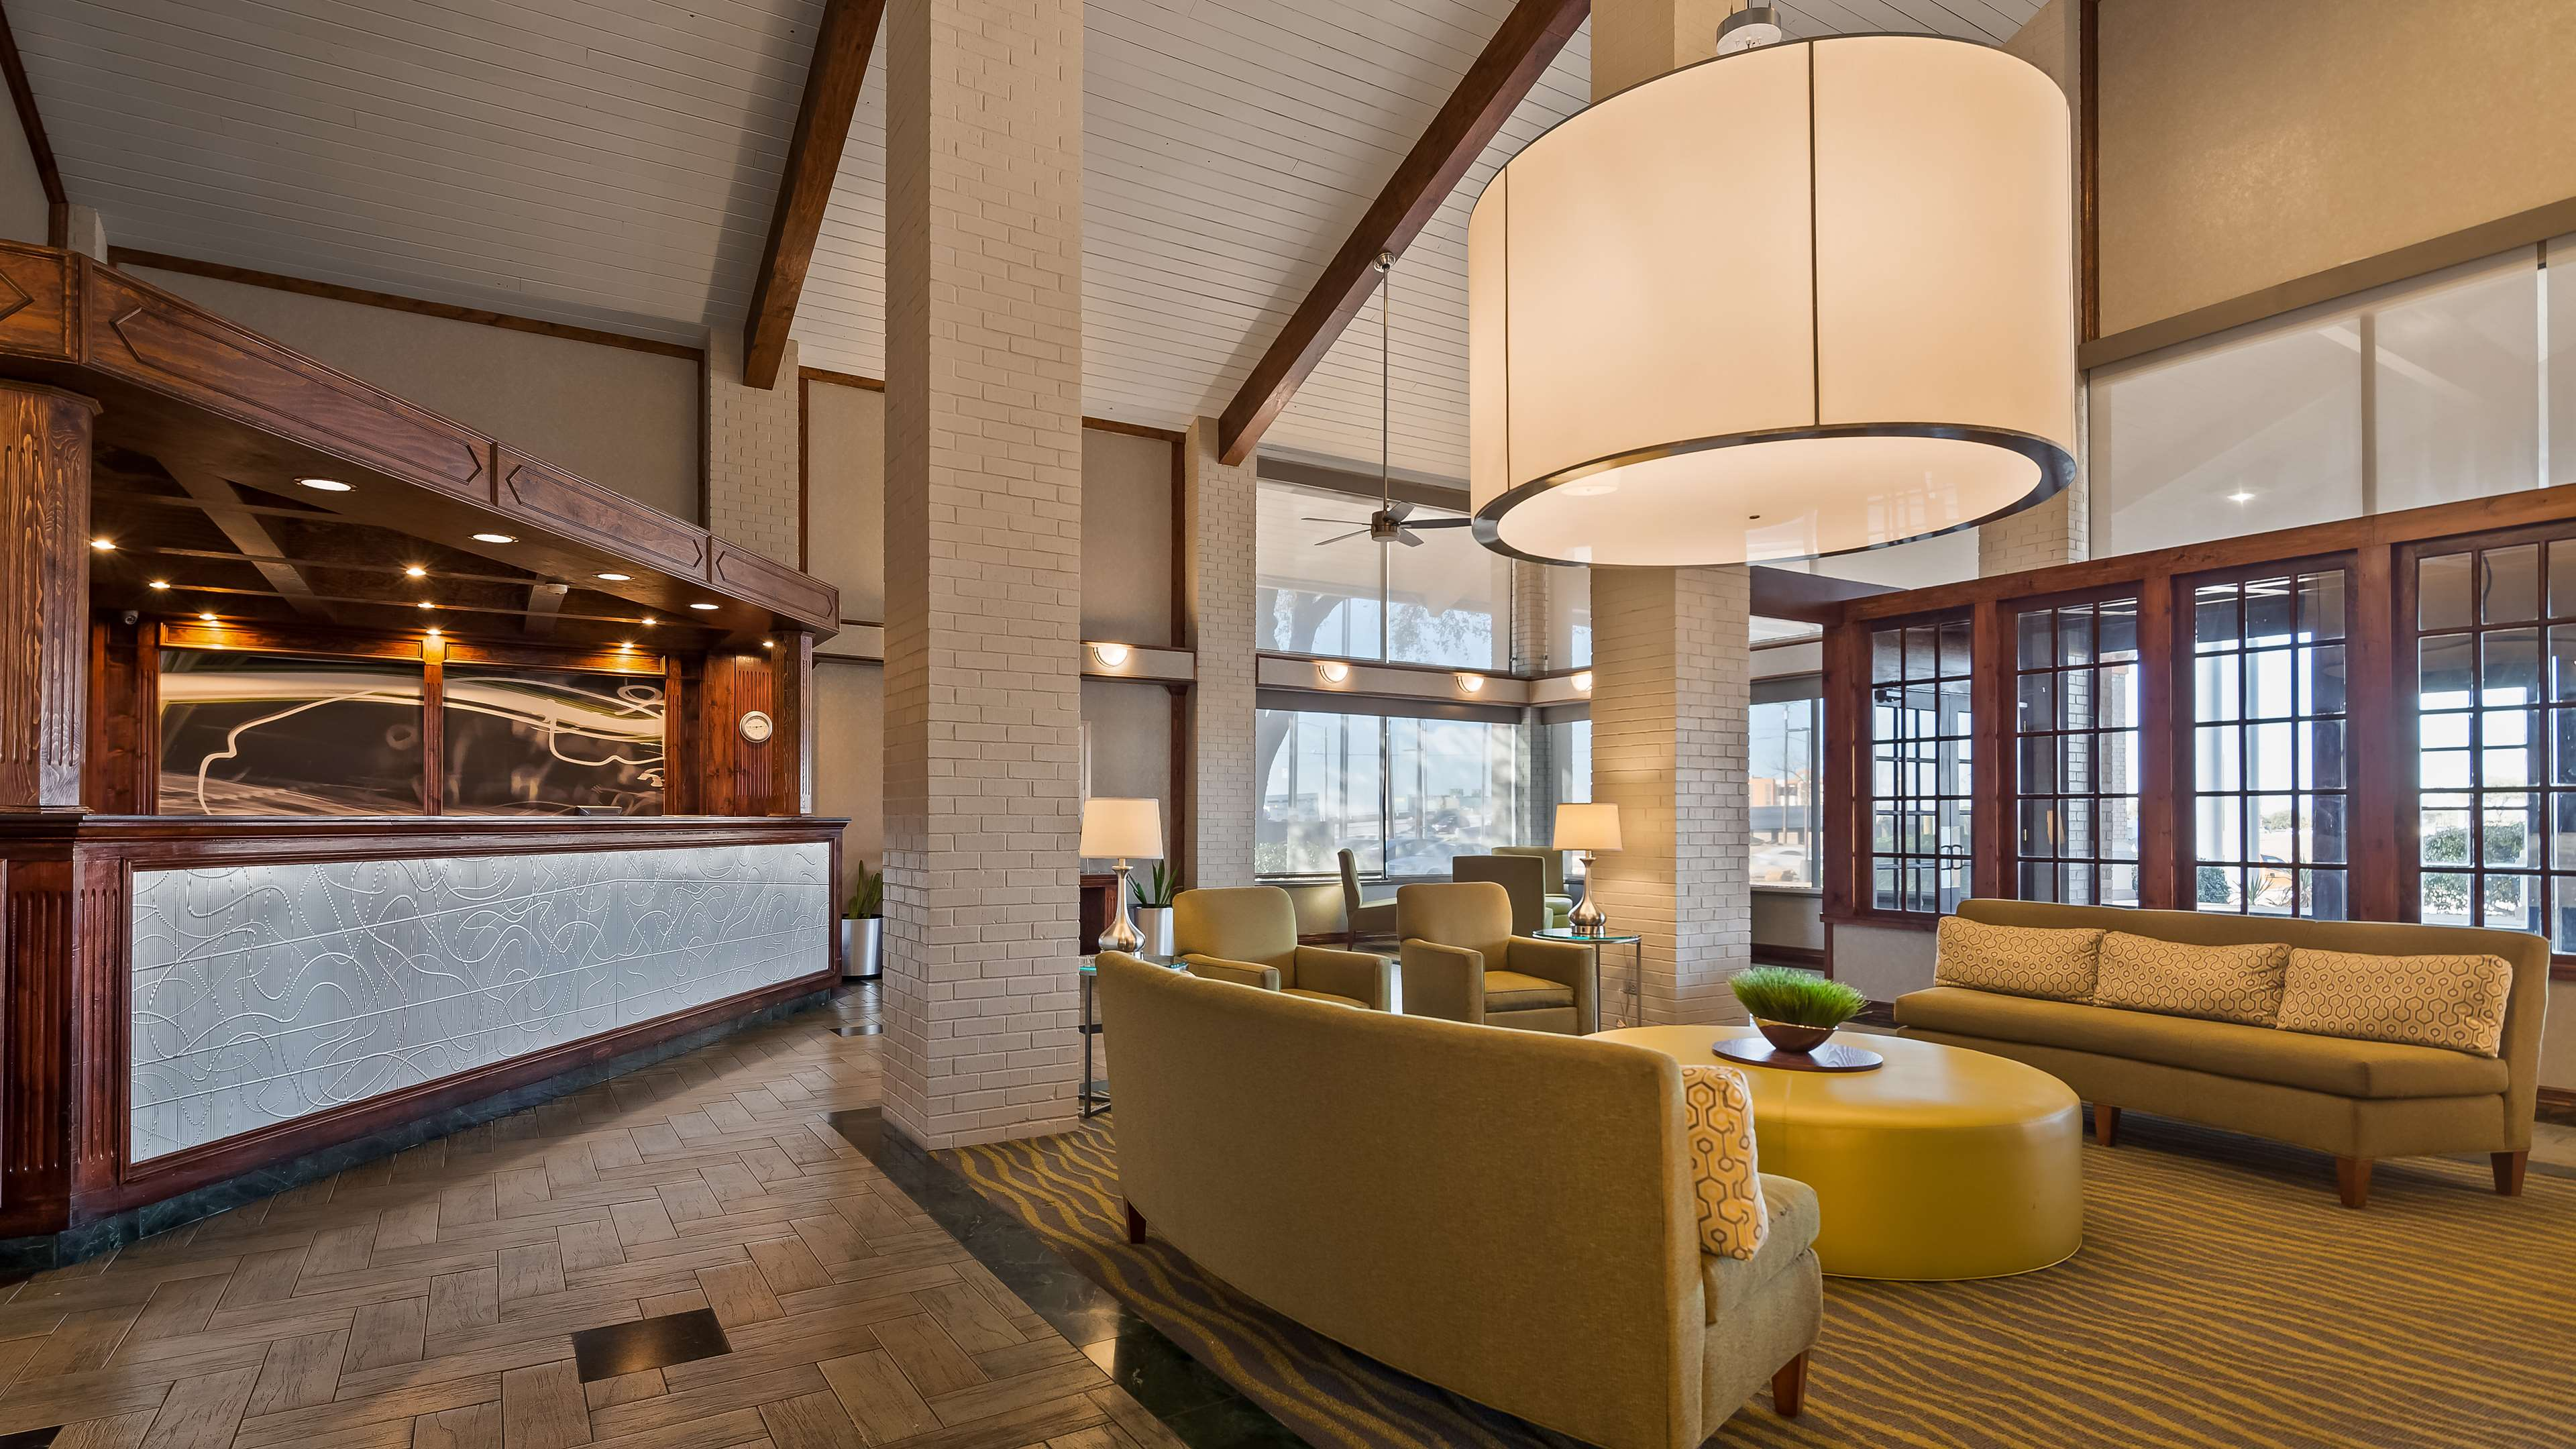 Best Western Irving Inn & Suites at DFW Airport image 2